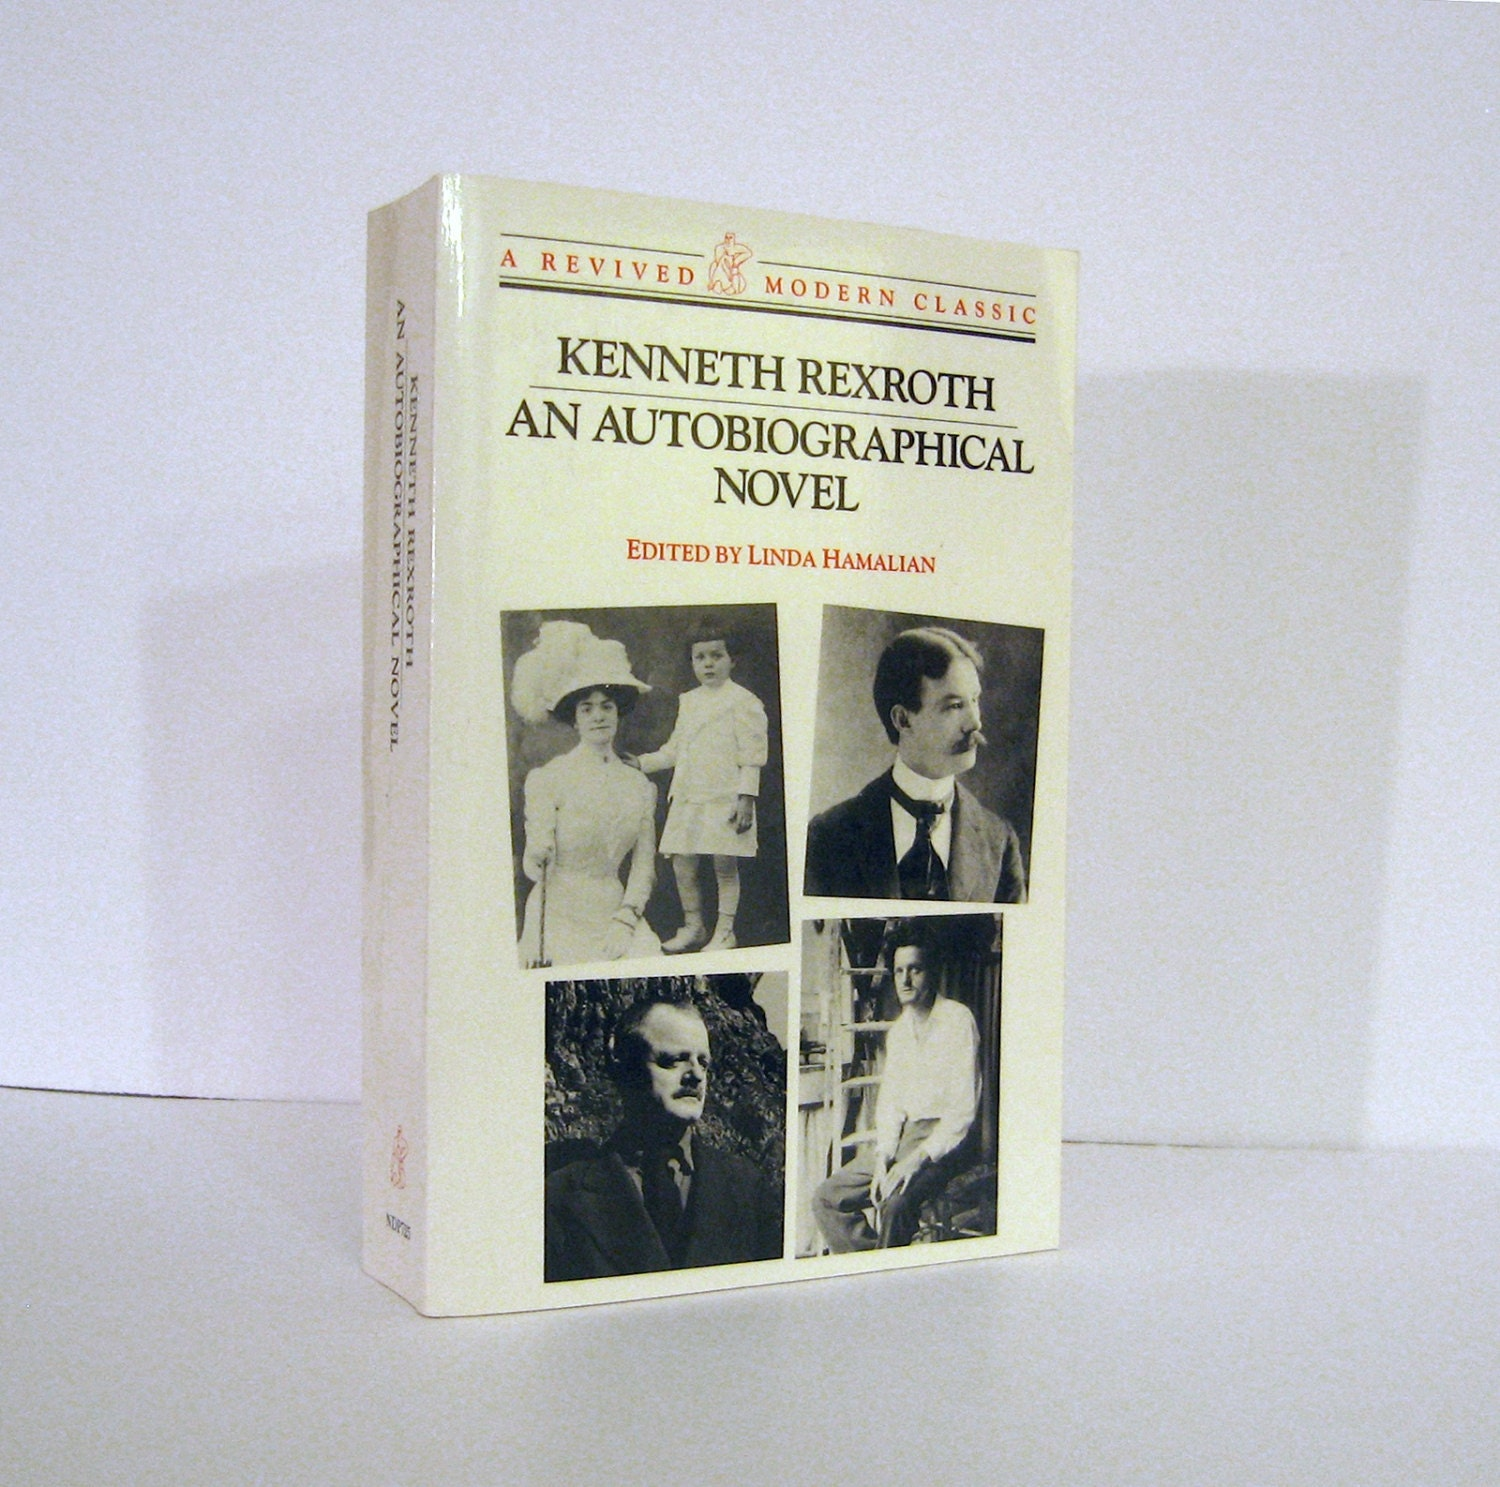 an introduction to the life of kenneth rexroth an american poet The collected poems of philip lamantia represents the lifework of the most visionary poet of the american postwar generation  first mentored by the san francisco poet kenneth rexroth, the teenage lamantia also came to the attention  throughout his life, lamantia sought to extend and renew the visionary tradition of.